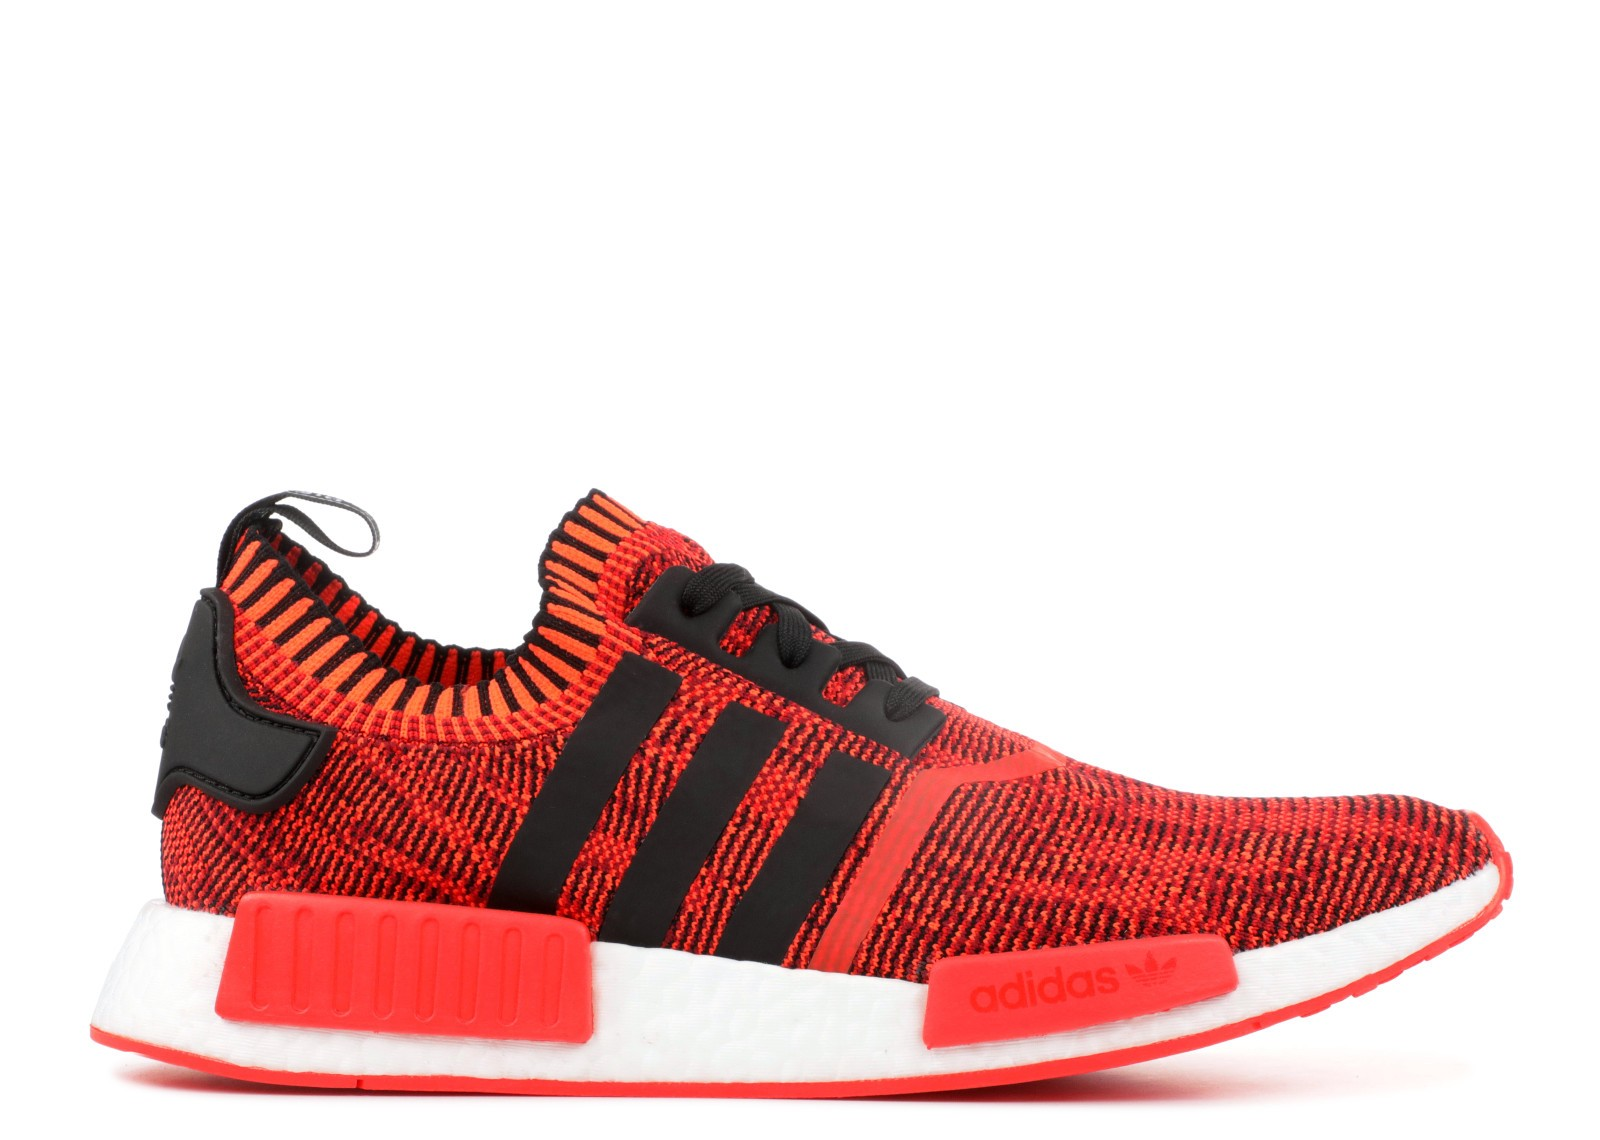 Adidas NMD R1 Primeknit Red Apple 2.0 CQ1865